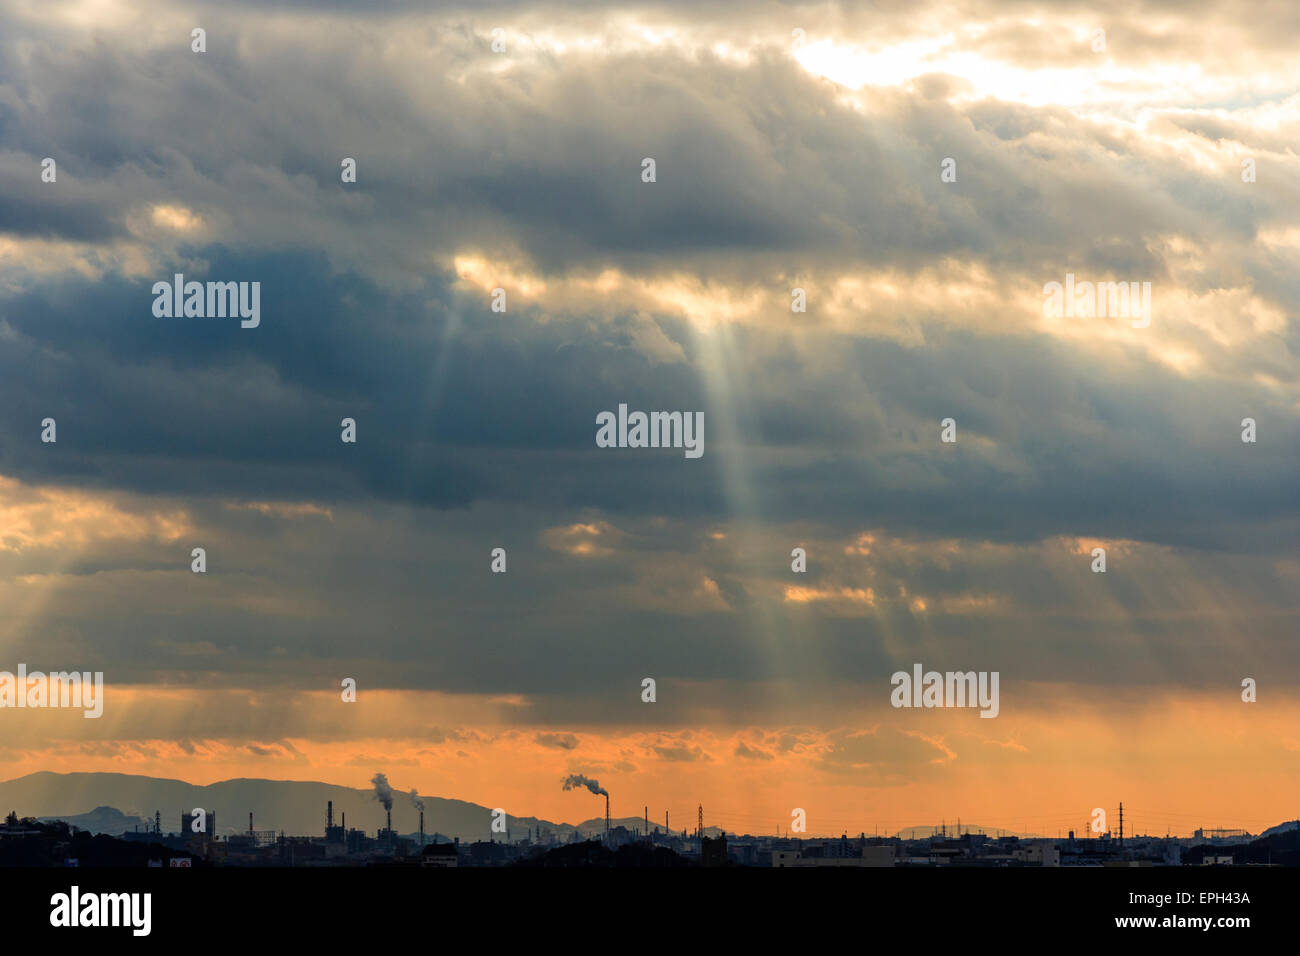 Japan, Himeji. Sunburst through thick stomry heavy clouds over city and industry with smoking factory chimneys, - Stock Image